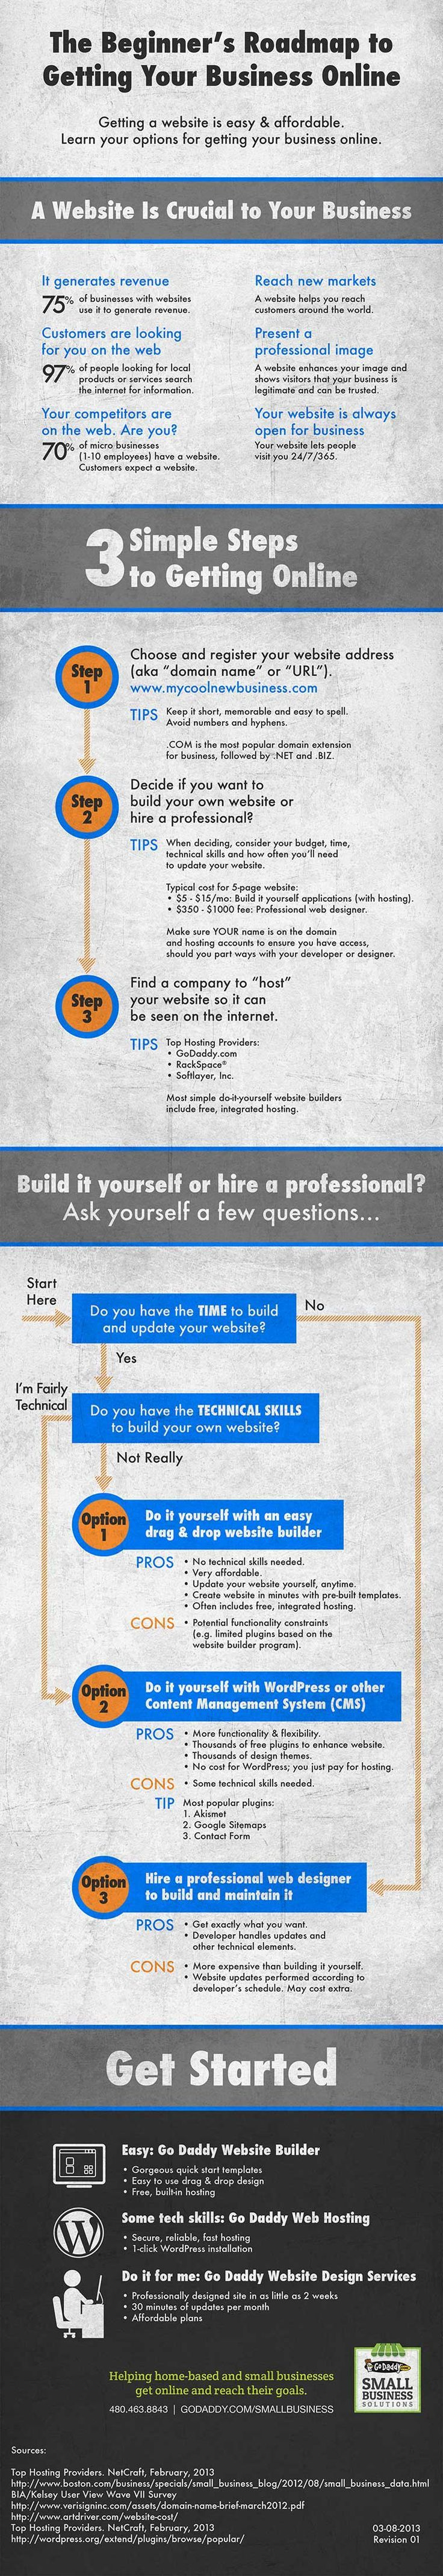 98 best learn entrepreneurship images on pinterest business beginners roadmap for getting your business online infographic solutioingenieria Image collections